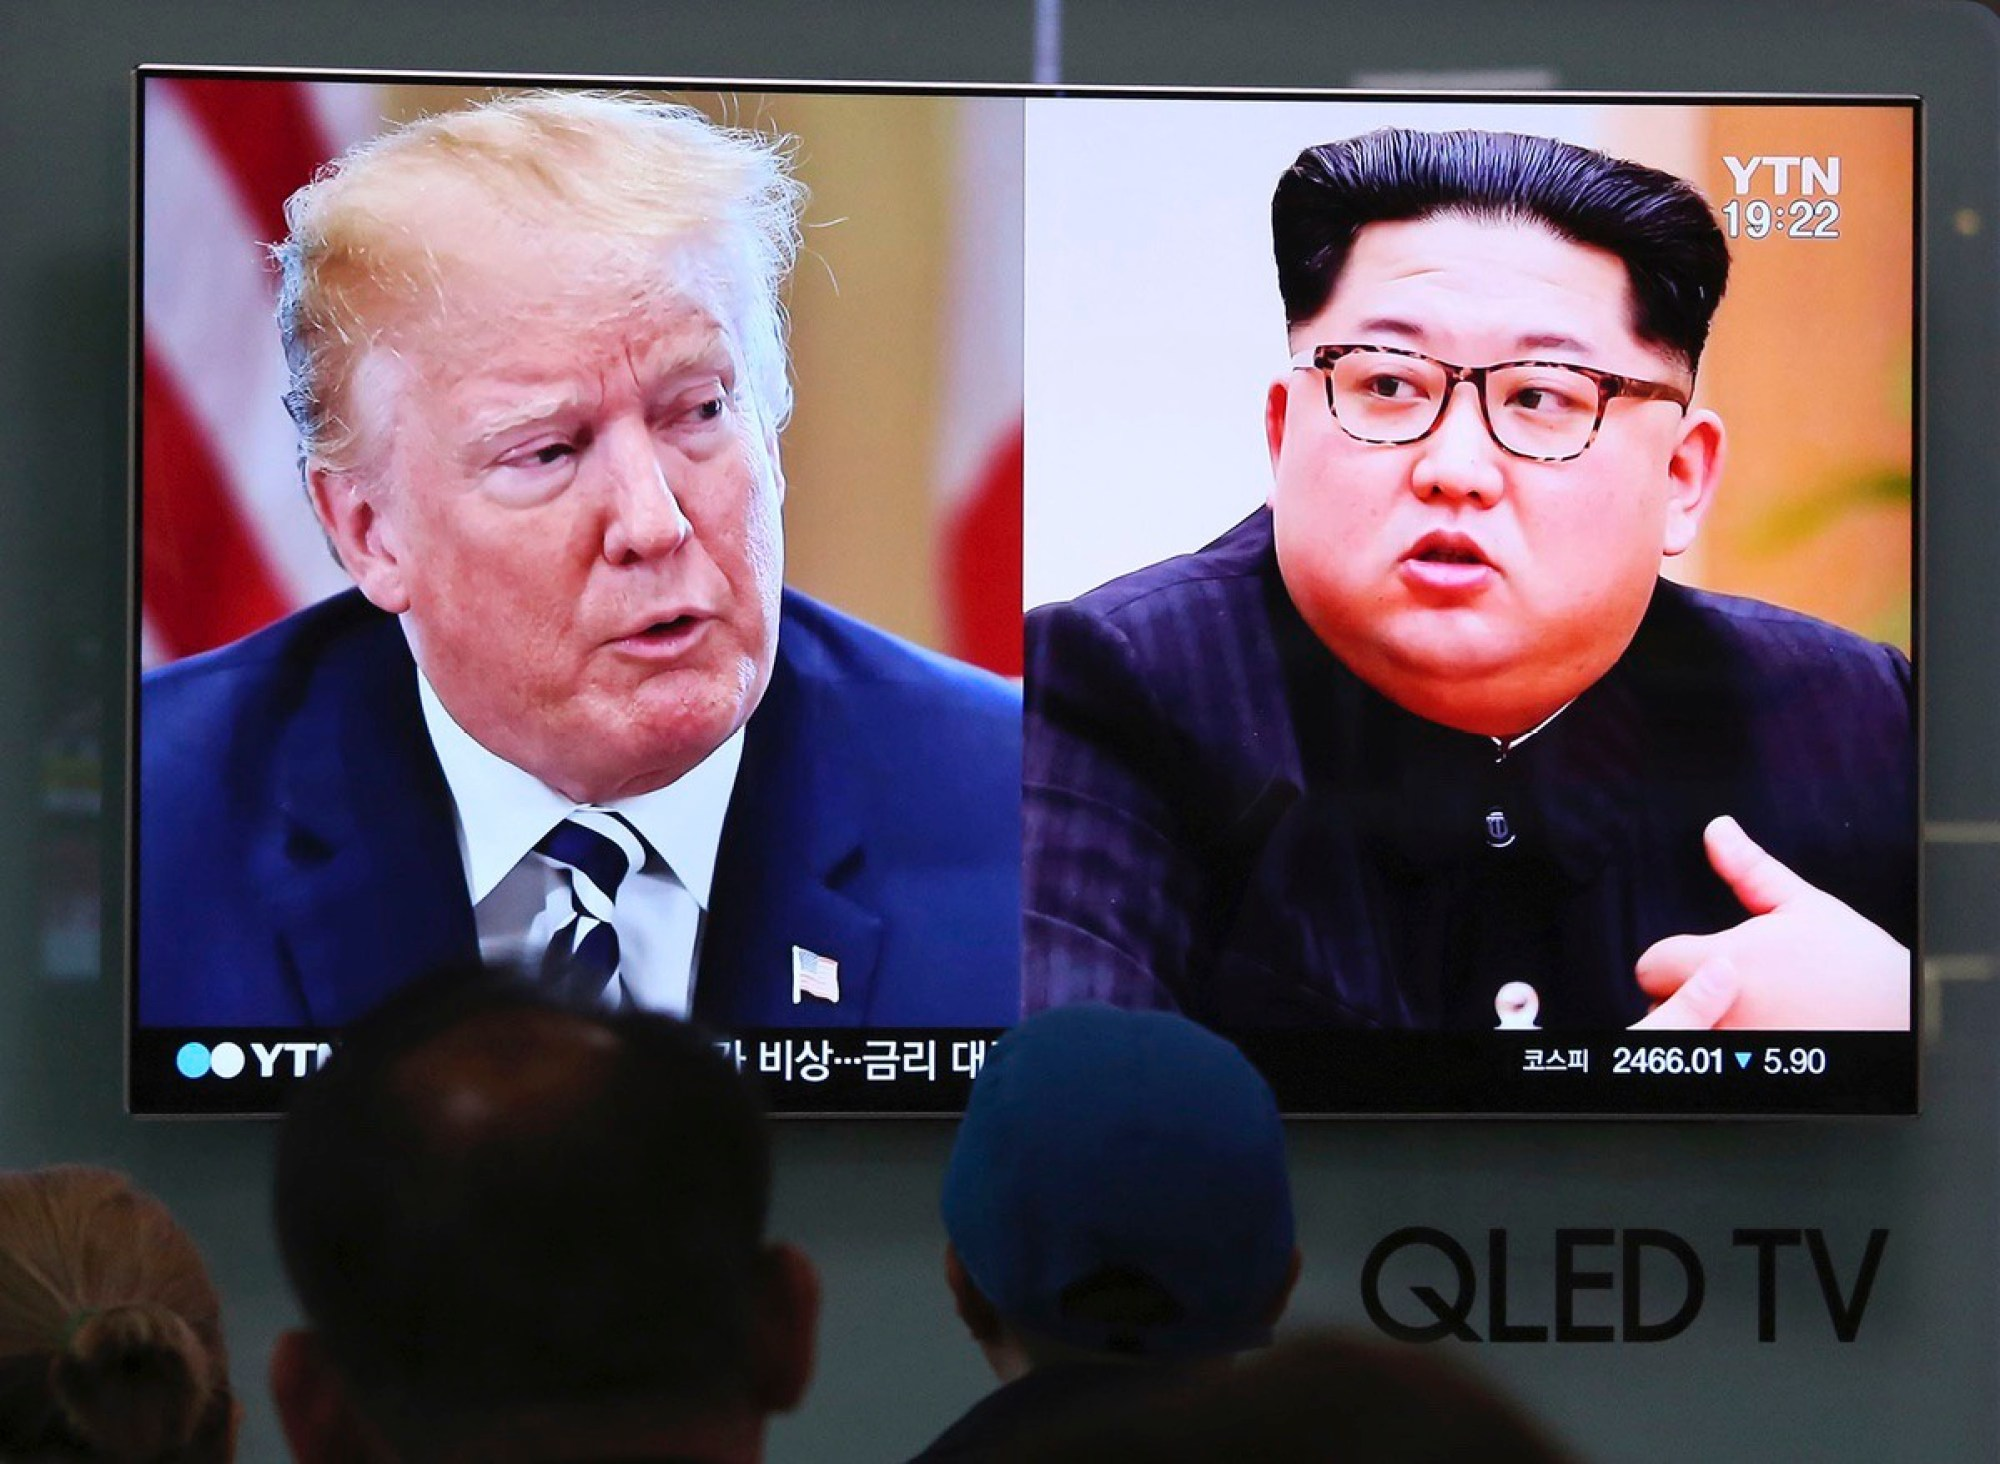 People watch a TV screen showing file footage of U.S. President Donald Trump, left, and North Korean leader Kim Jong Un during a news program at the Seoul Railway Station in Seoul, South Korea, Thursday, May 24, 2018. (AP Photo/Ahn Young-joon)